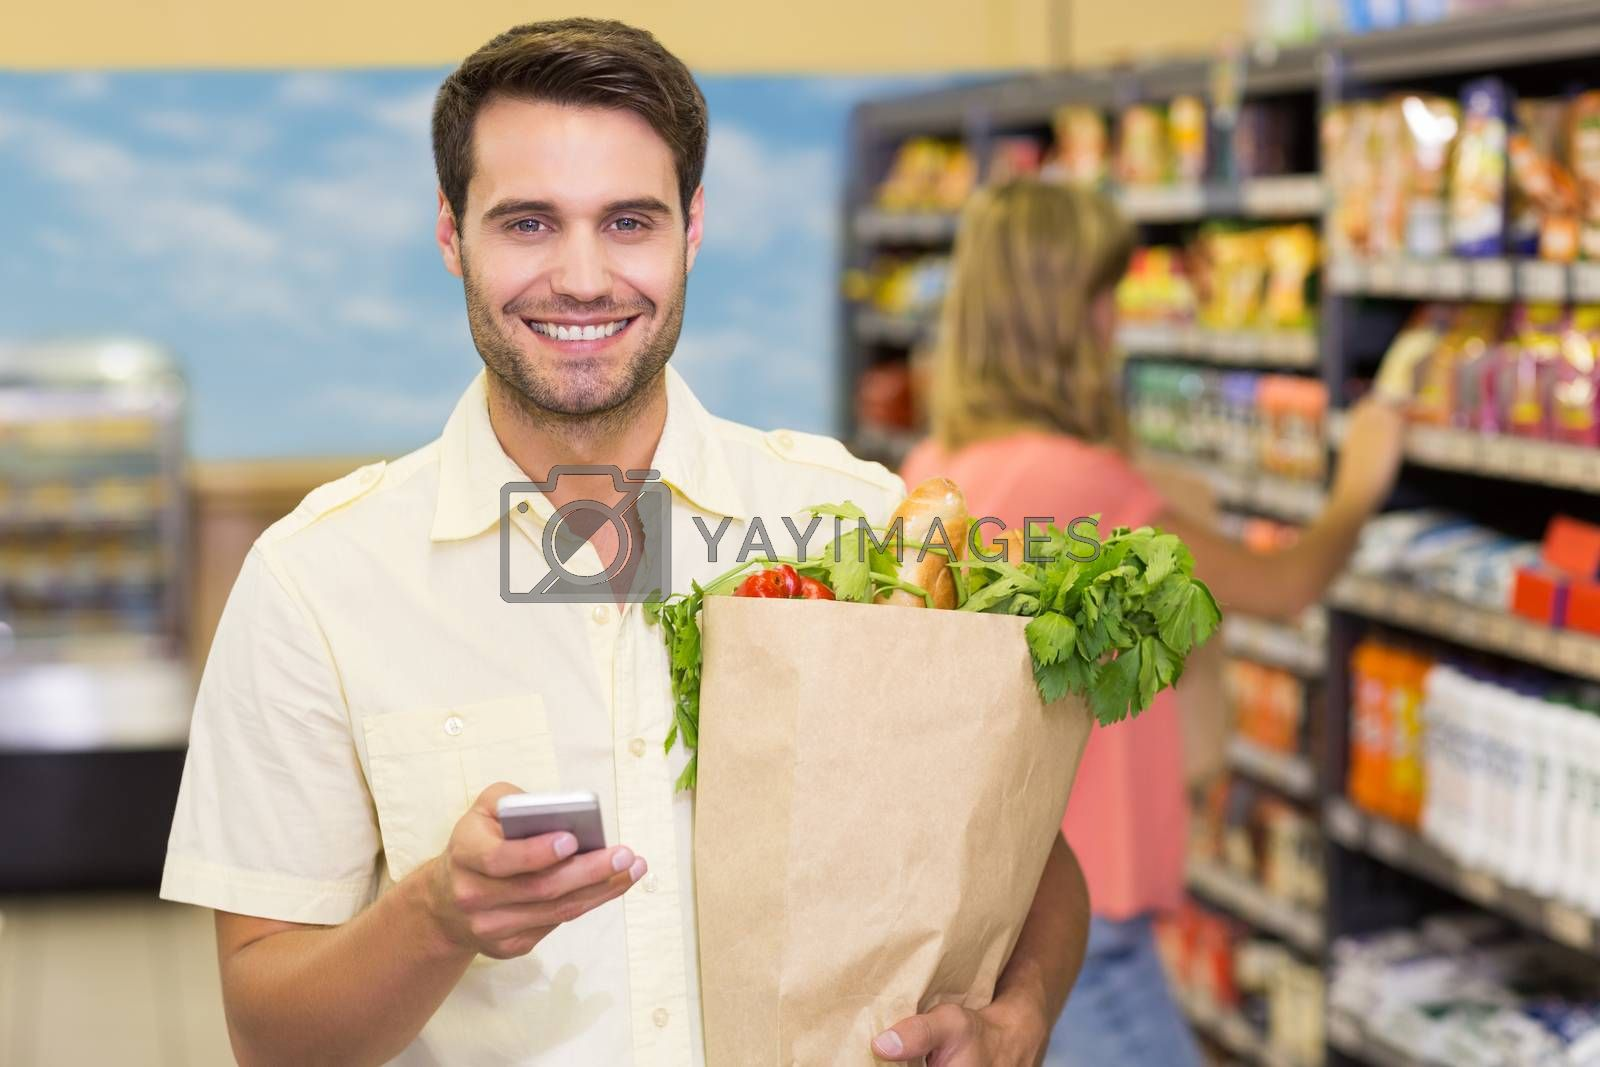 Royalty free image of Portrait of smiling handsome man buying food products and using his smartphone  by Wavebreakmedia